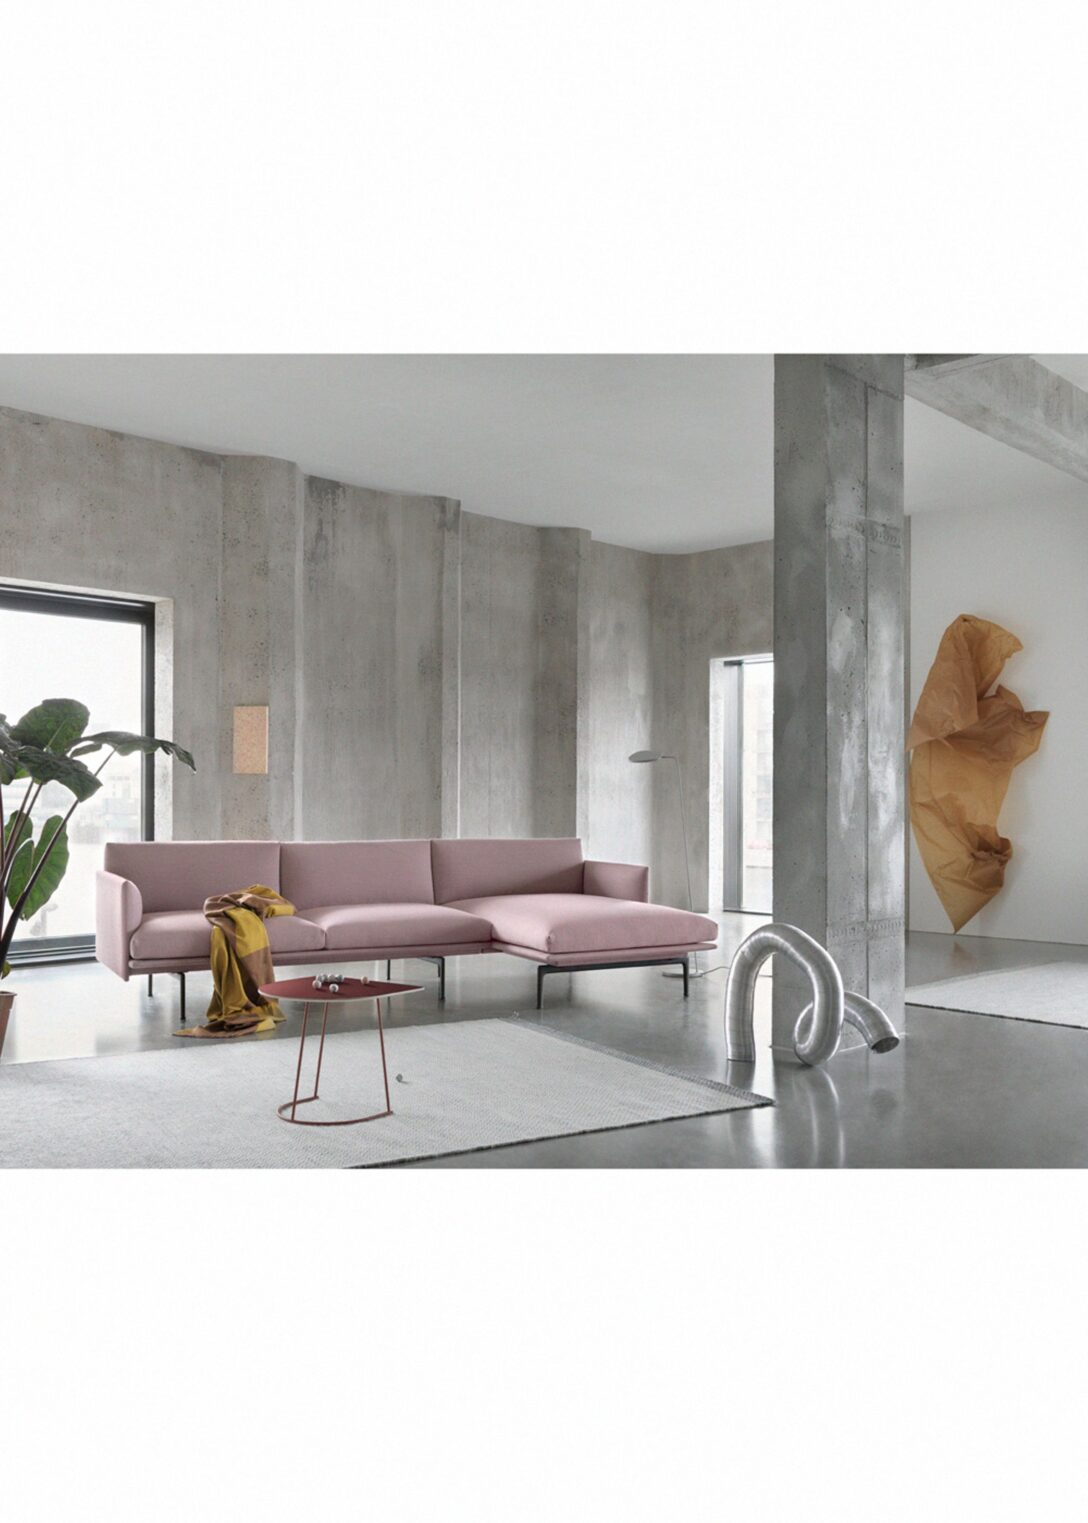 Large Size of Muuto Sofa Compose Review Connect Rest Sale 2 Seater System Outline 3 Furniture Uk Modular Around Sofabord Xl Chaise Lounge Right 1 Sitzer U Form Xxl Hussen Sofa Muuto Sofa